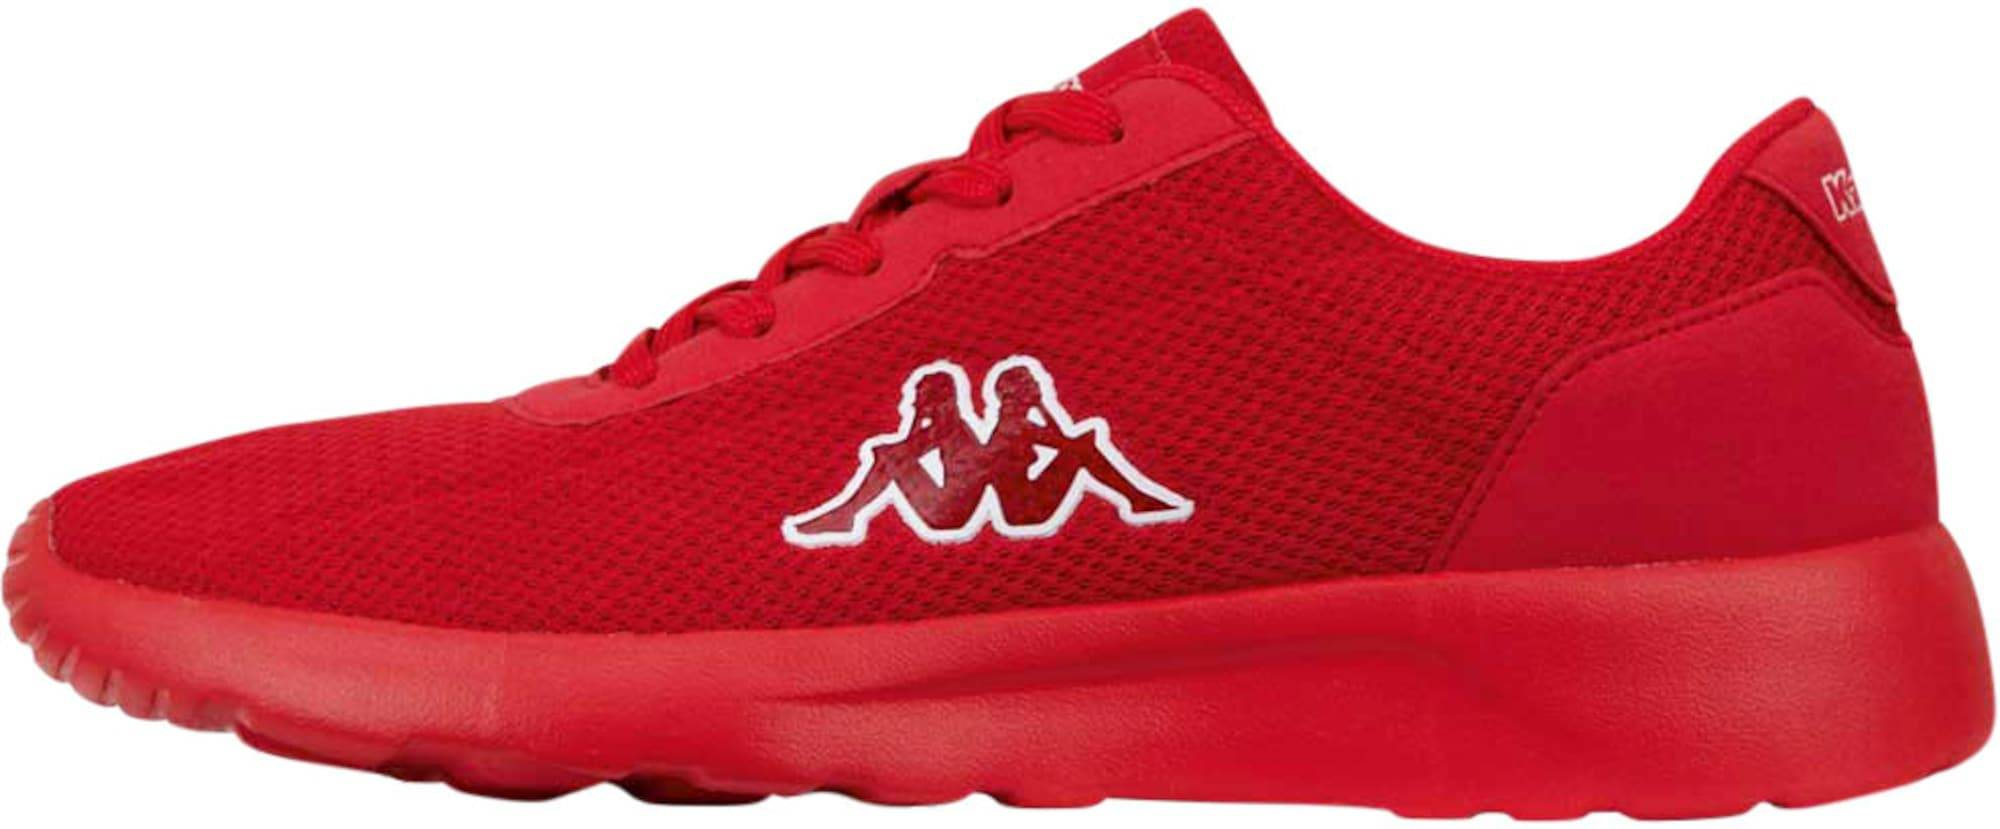 KAPPA Chaussure de course  - Rouge - Taille: 41 - male